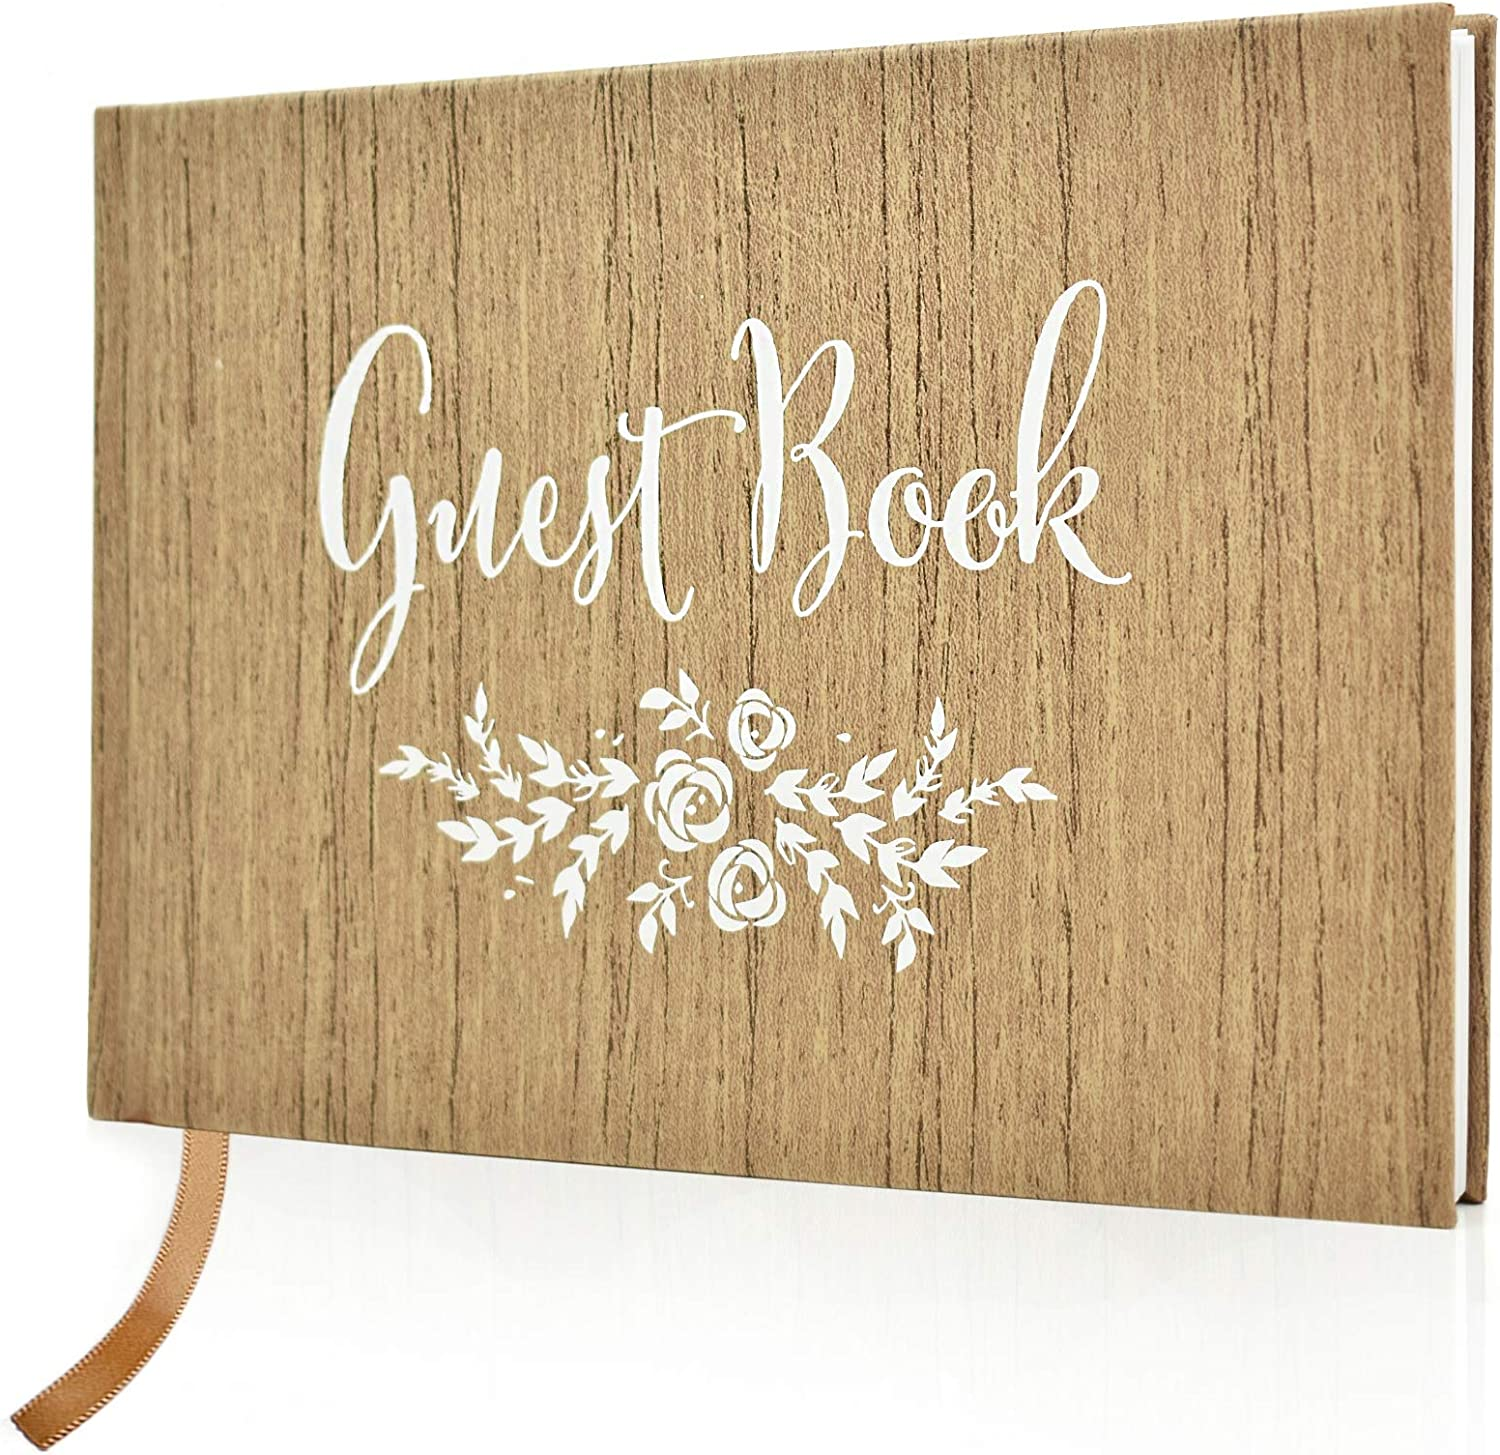 Guestbook wedding with and without questions white pages blanko photobuch classy romantic vintage boho love personalized name date